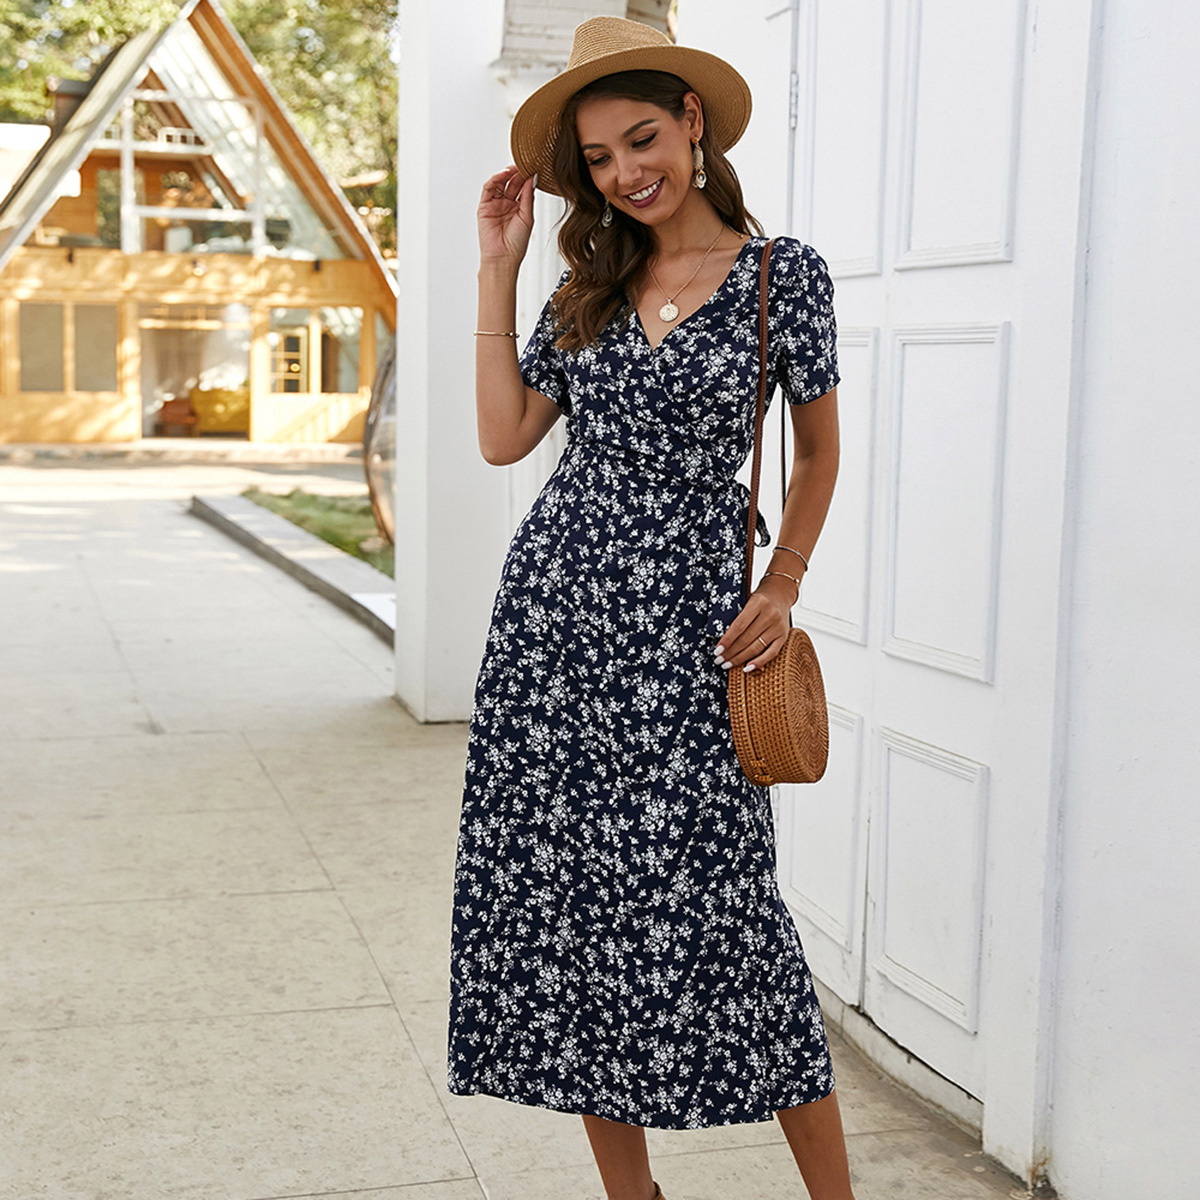 Jastie <font><b>Floral</b></font> <font><b>Printed</b></font> Midi <font><b>Dress</b></font> 2020 Summer <font><b>V</b></font> Neck <font><b>Short</b></font> Sleeve Vintage Chic Vestidos <font><b>Boho</b></font> <font><b>Beach</b></font> <font><b>Sexy</b></font> Casual Woman Wrap <font><b>Dress</b></font> image